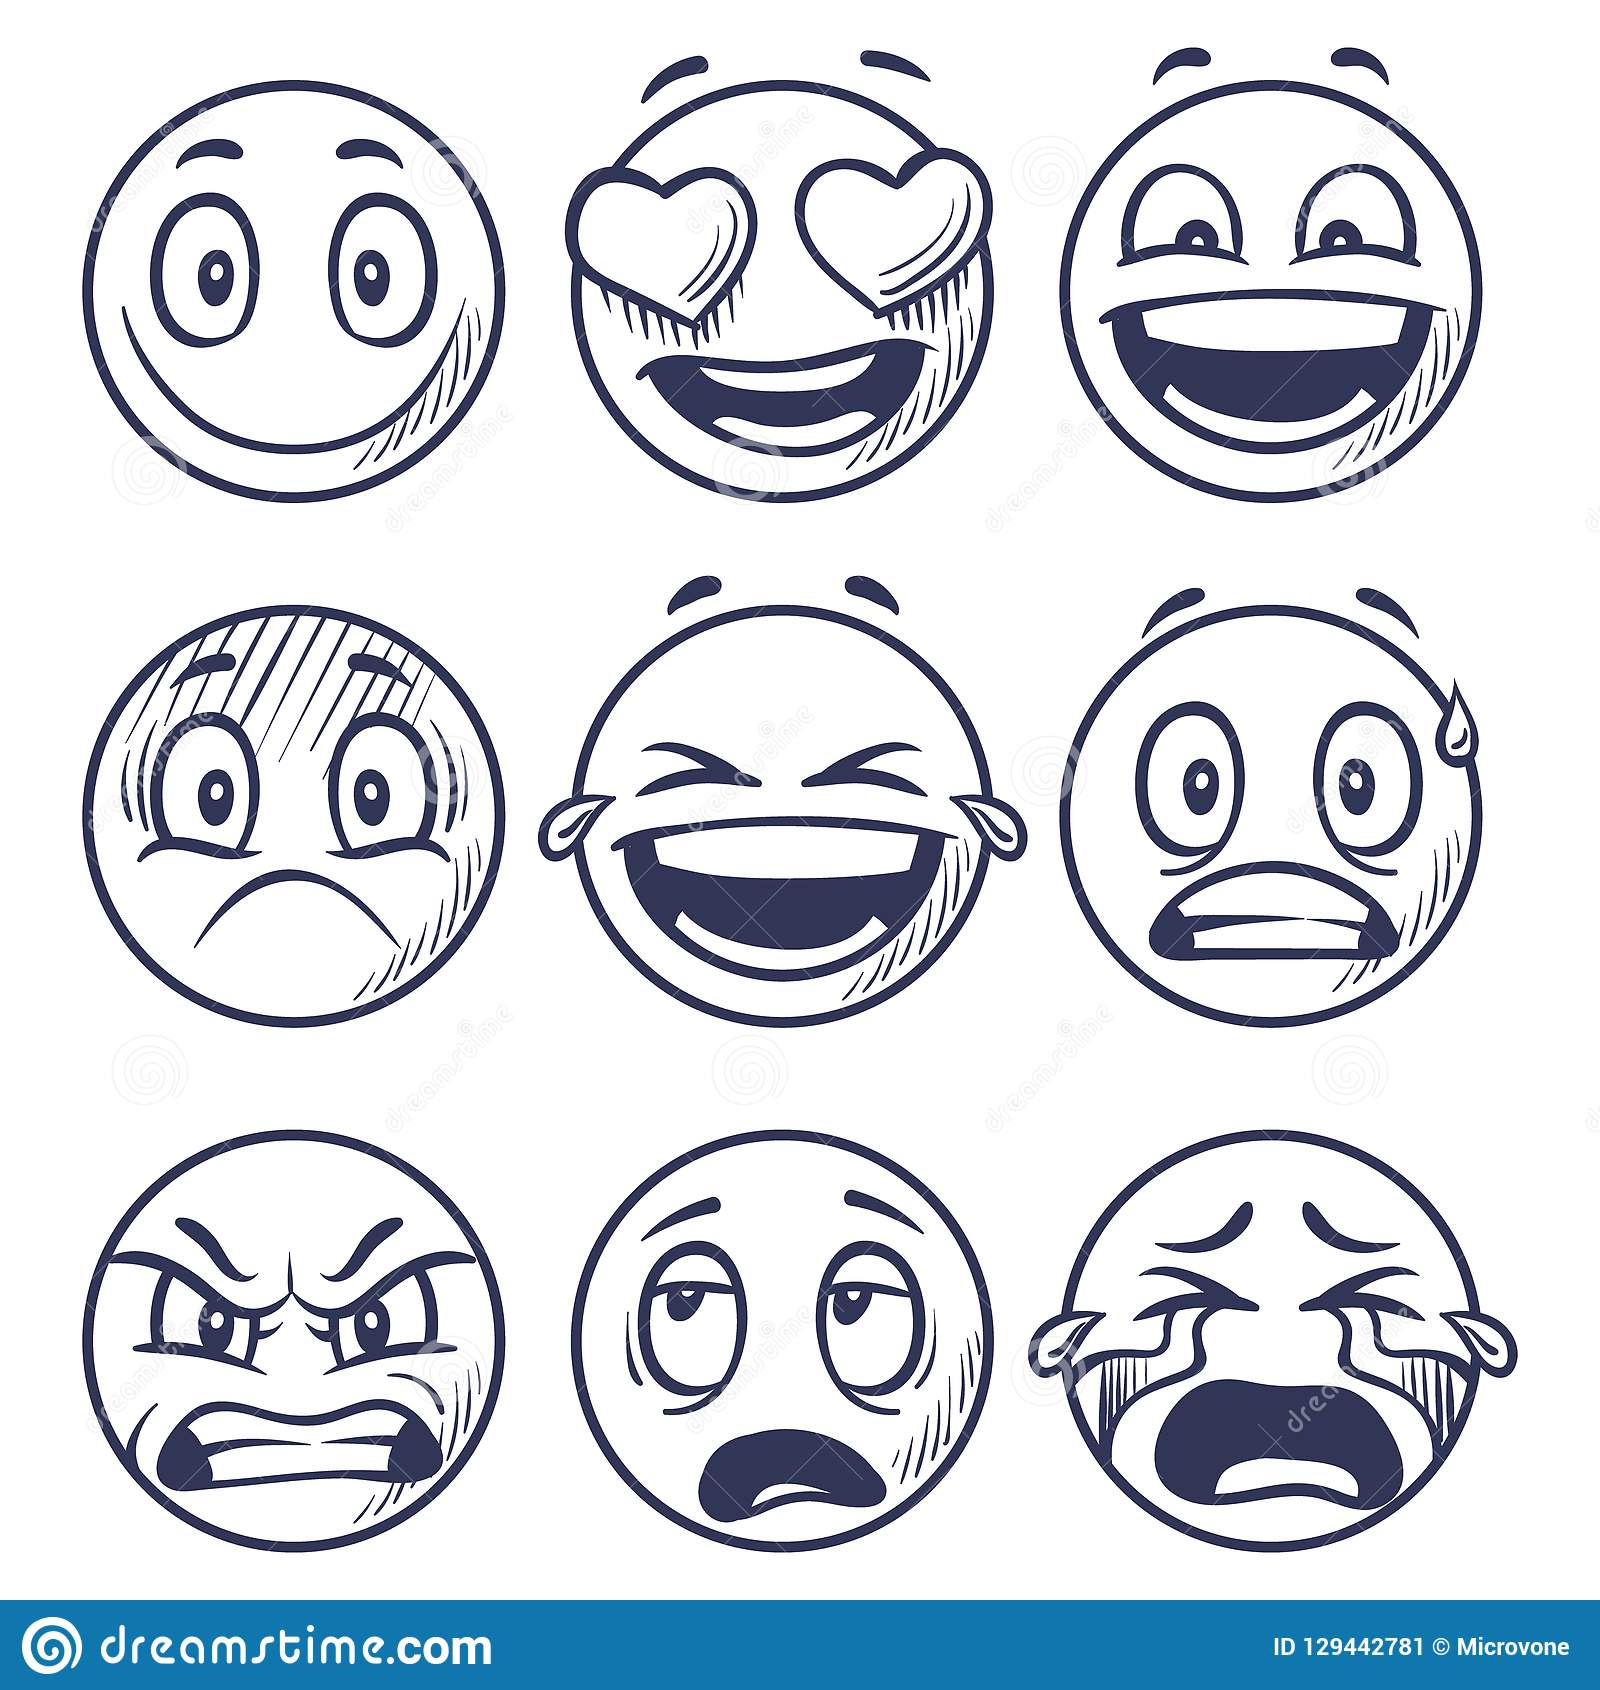 Doodle Smiley Stock Illustrations – 3,938 Doodle Smiley ...